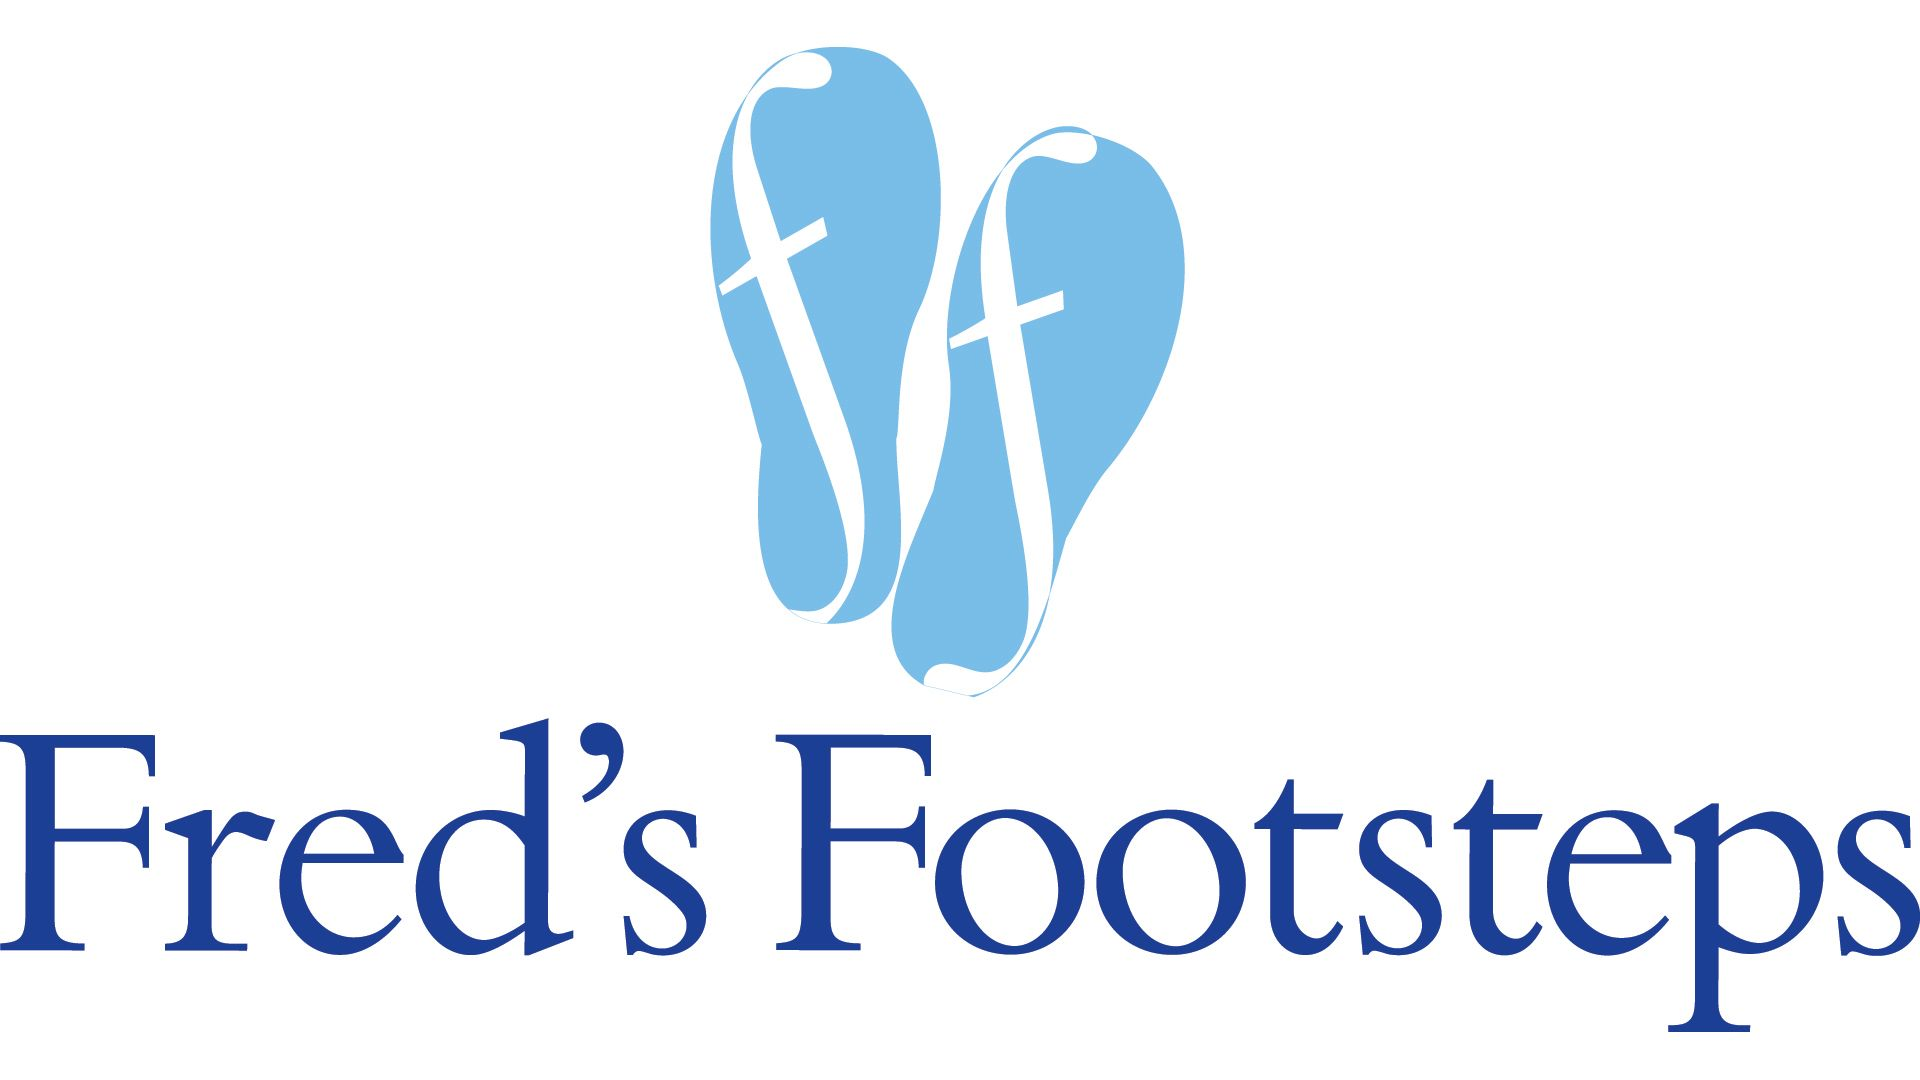 Fred's Footsteps COVID-19 Relief Fund